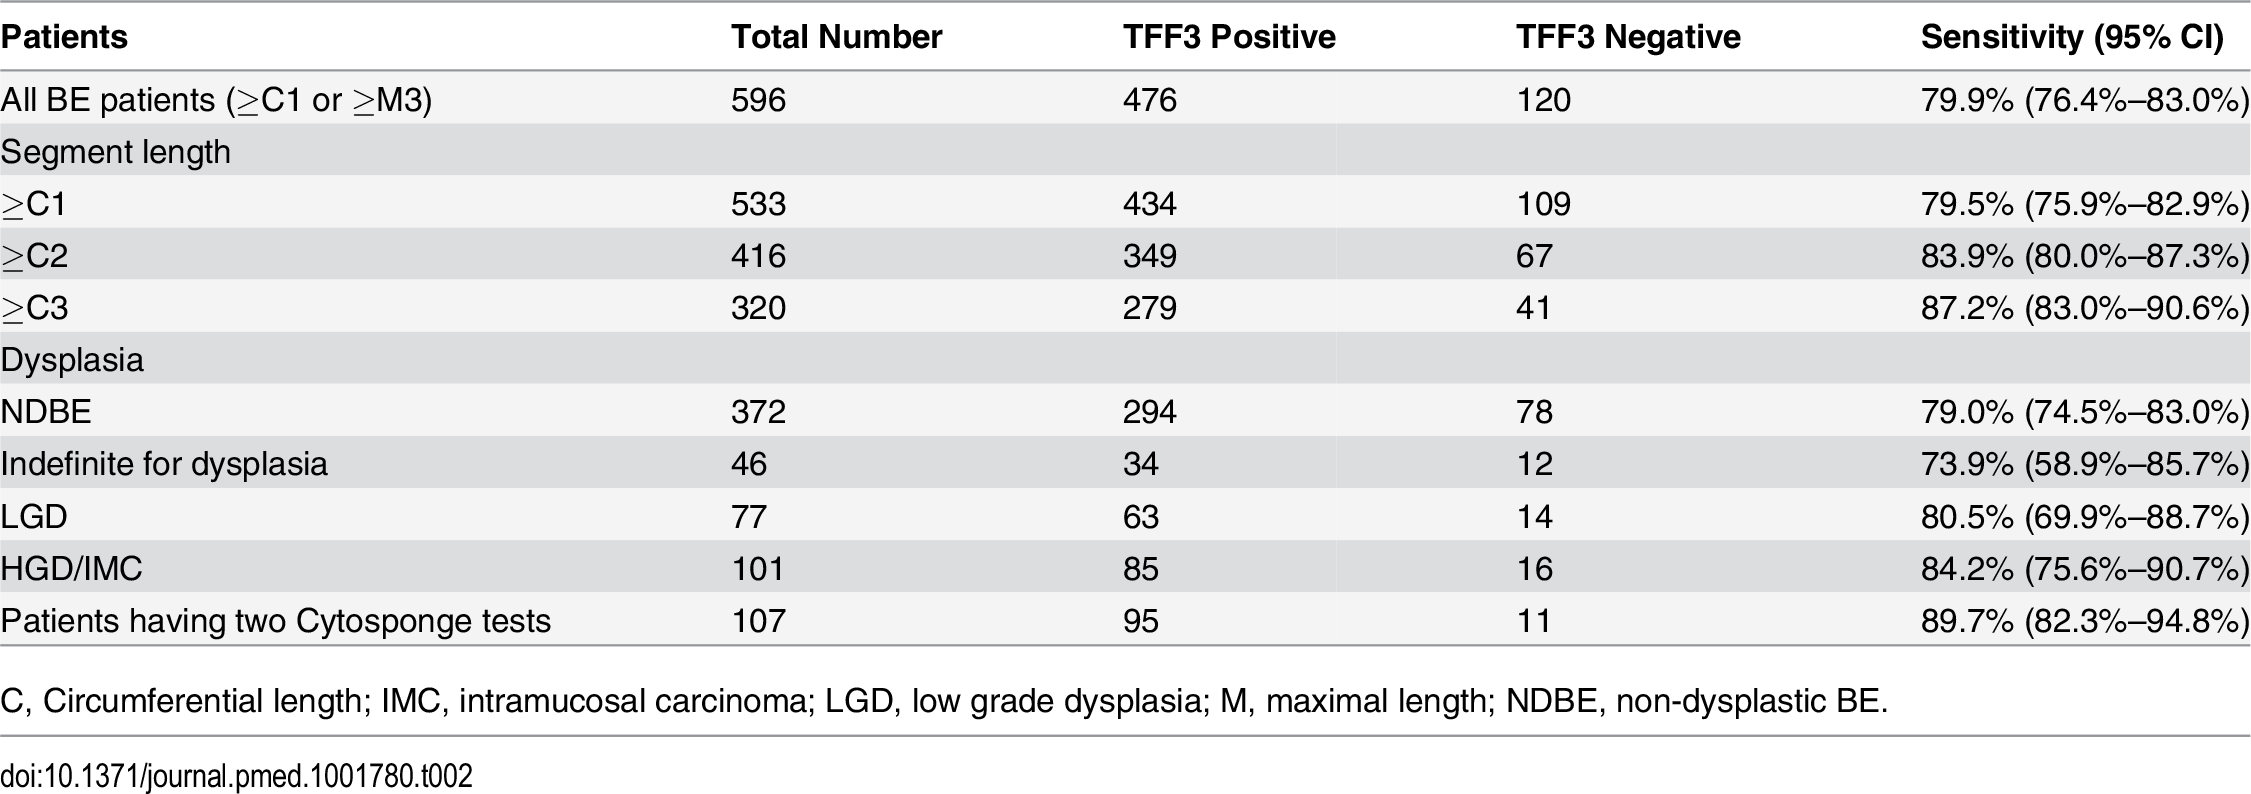 Sensitivity of the Cytosponge-TFF3 in different groups of patients (full dataset in <em class=&quot;ref&quot;>S2</em> and <em class=&quot;ref&quot;>S3</em> Tables).